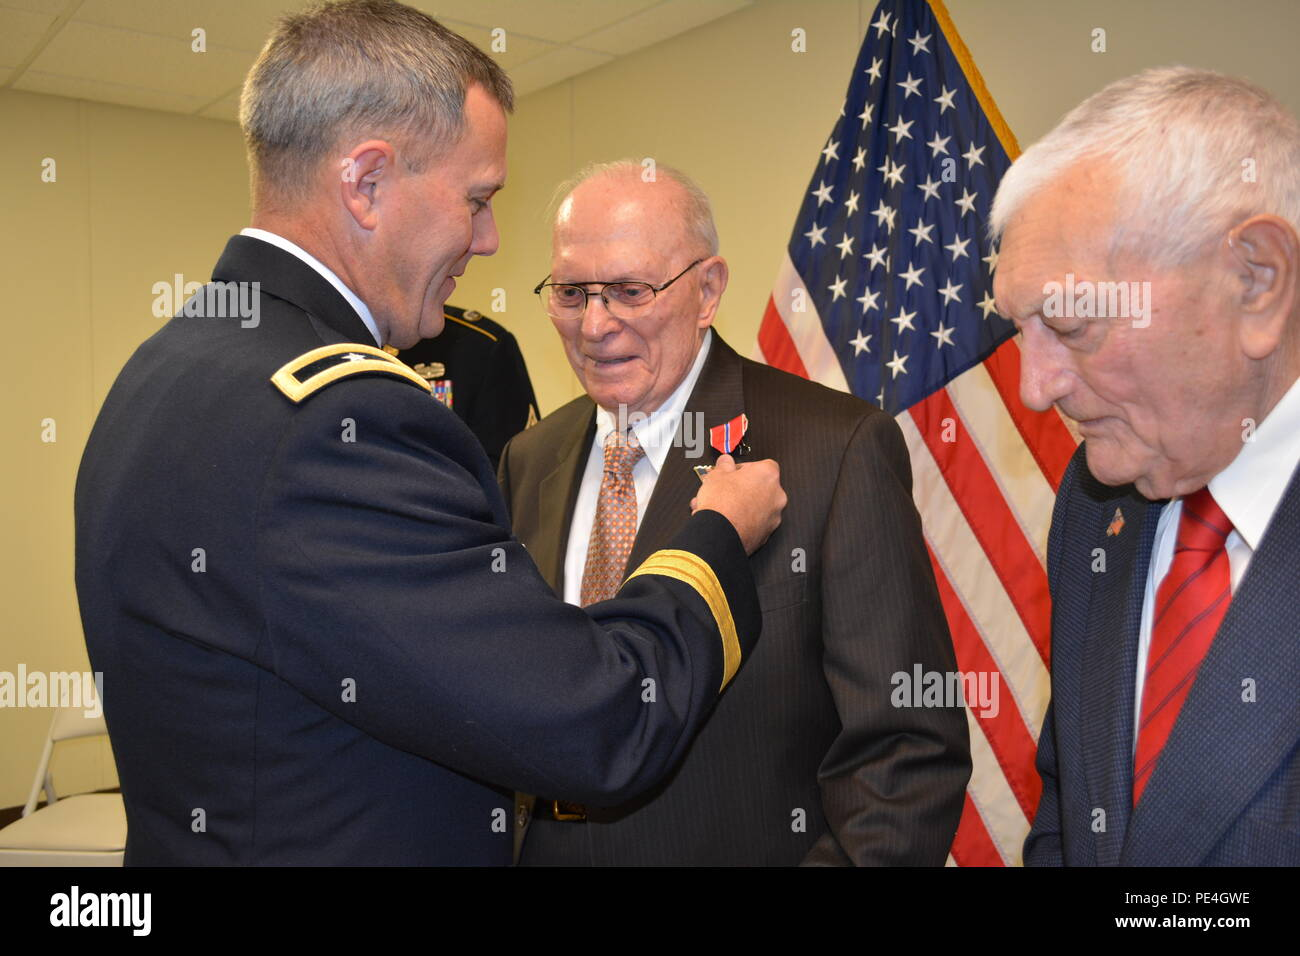 Brig. Gen. Steven Ainsworth, commander 94th Training Division, awards the Bronze Star medal to WWII veteran Lt. Col., retired, Andrew Cella during an intimate ceremony filled with family, friends and service members at Fort Dix, N.J., Sept. 12, 2015. Cella and Technician 4th Class, retired, Vincenzo Geramita (Right) each received the medal after 70 years because after they earned their Combat Infantry Badges for the fighting they experienced in Europe, neither one knew that a 1947 general order made them eligible for the Bronze Star since they had earned their CIBs between 1941 and 1945. - Stock Image